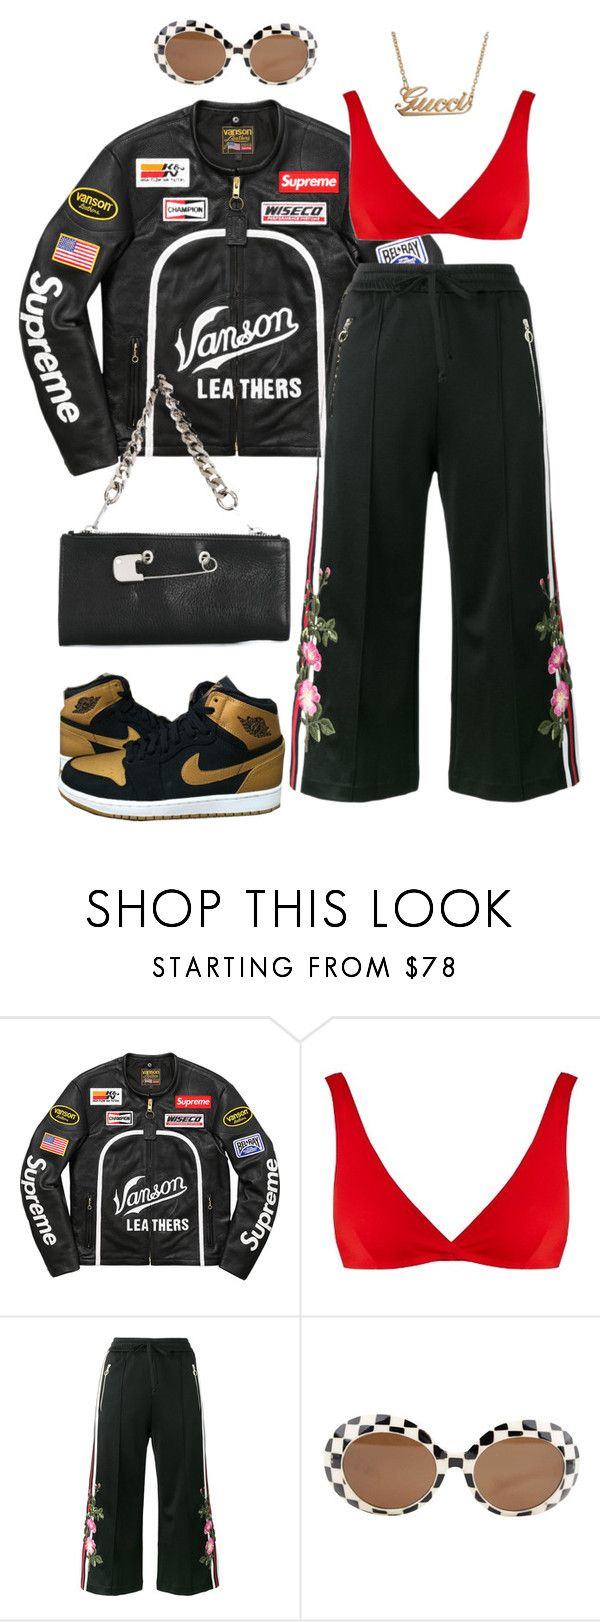 """Sans titre #609"" by a4styled ❤ liked on Polyvore featuring Vanson, Solid & Striped, Gucci and Sonia by Sonia Rykiel"